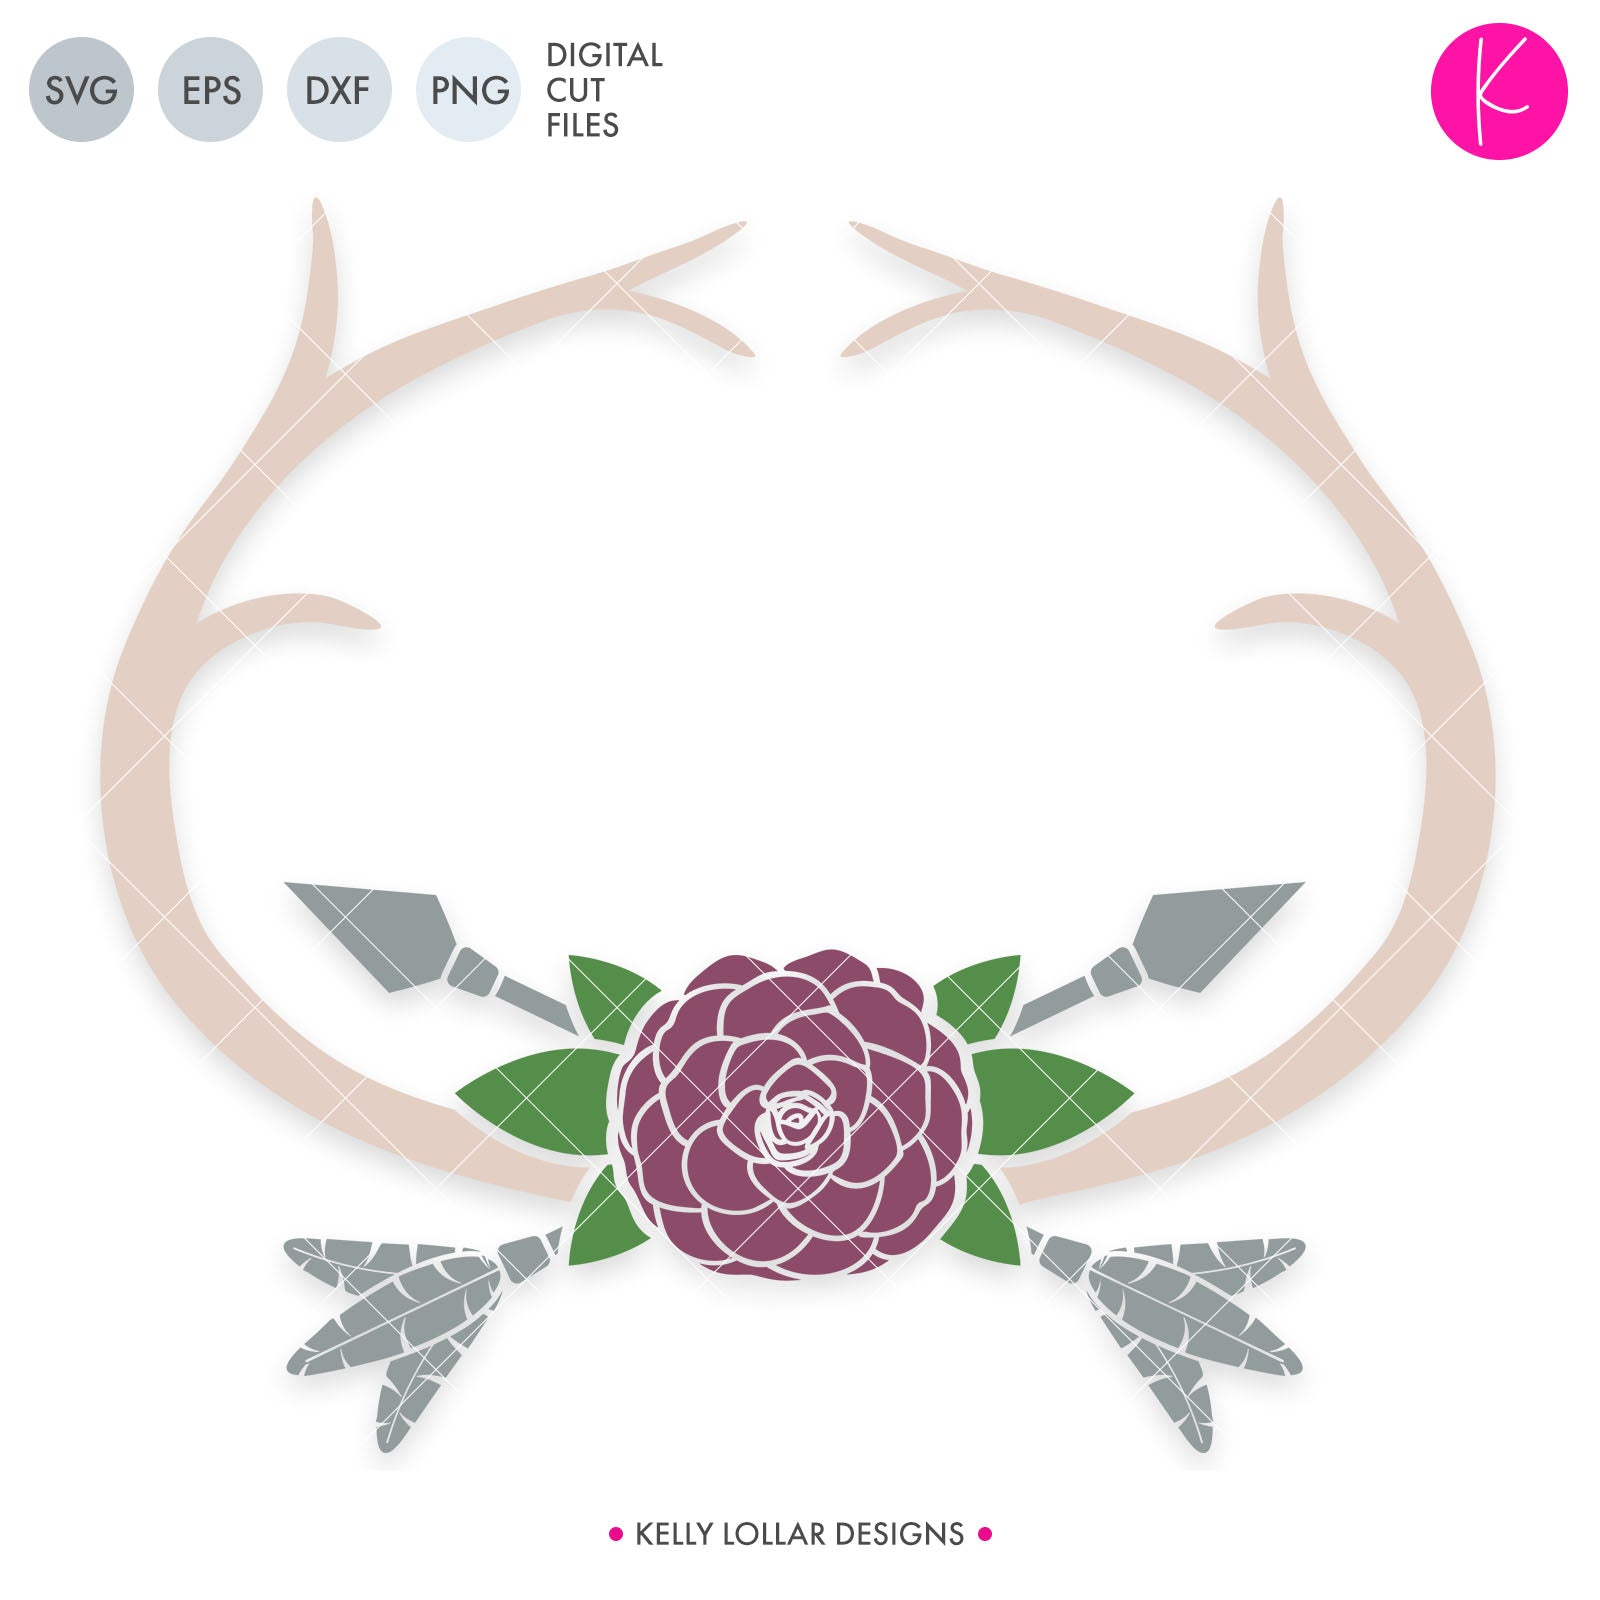 Flower and Rounded Antler Frame | SVG DXF EPS PNG Cut Files Rounded Antler Monogram with Camilla Flower, Leaves and Feather Tipped Crossed Arrows | SVG DXF EPS PNG Cut Files You can't go wrong with a beautiful antler monogram svg for wedding,